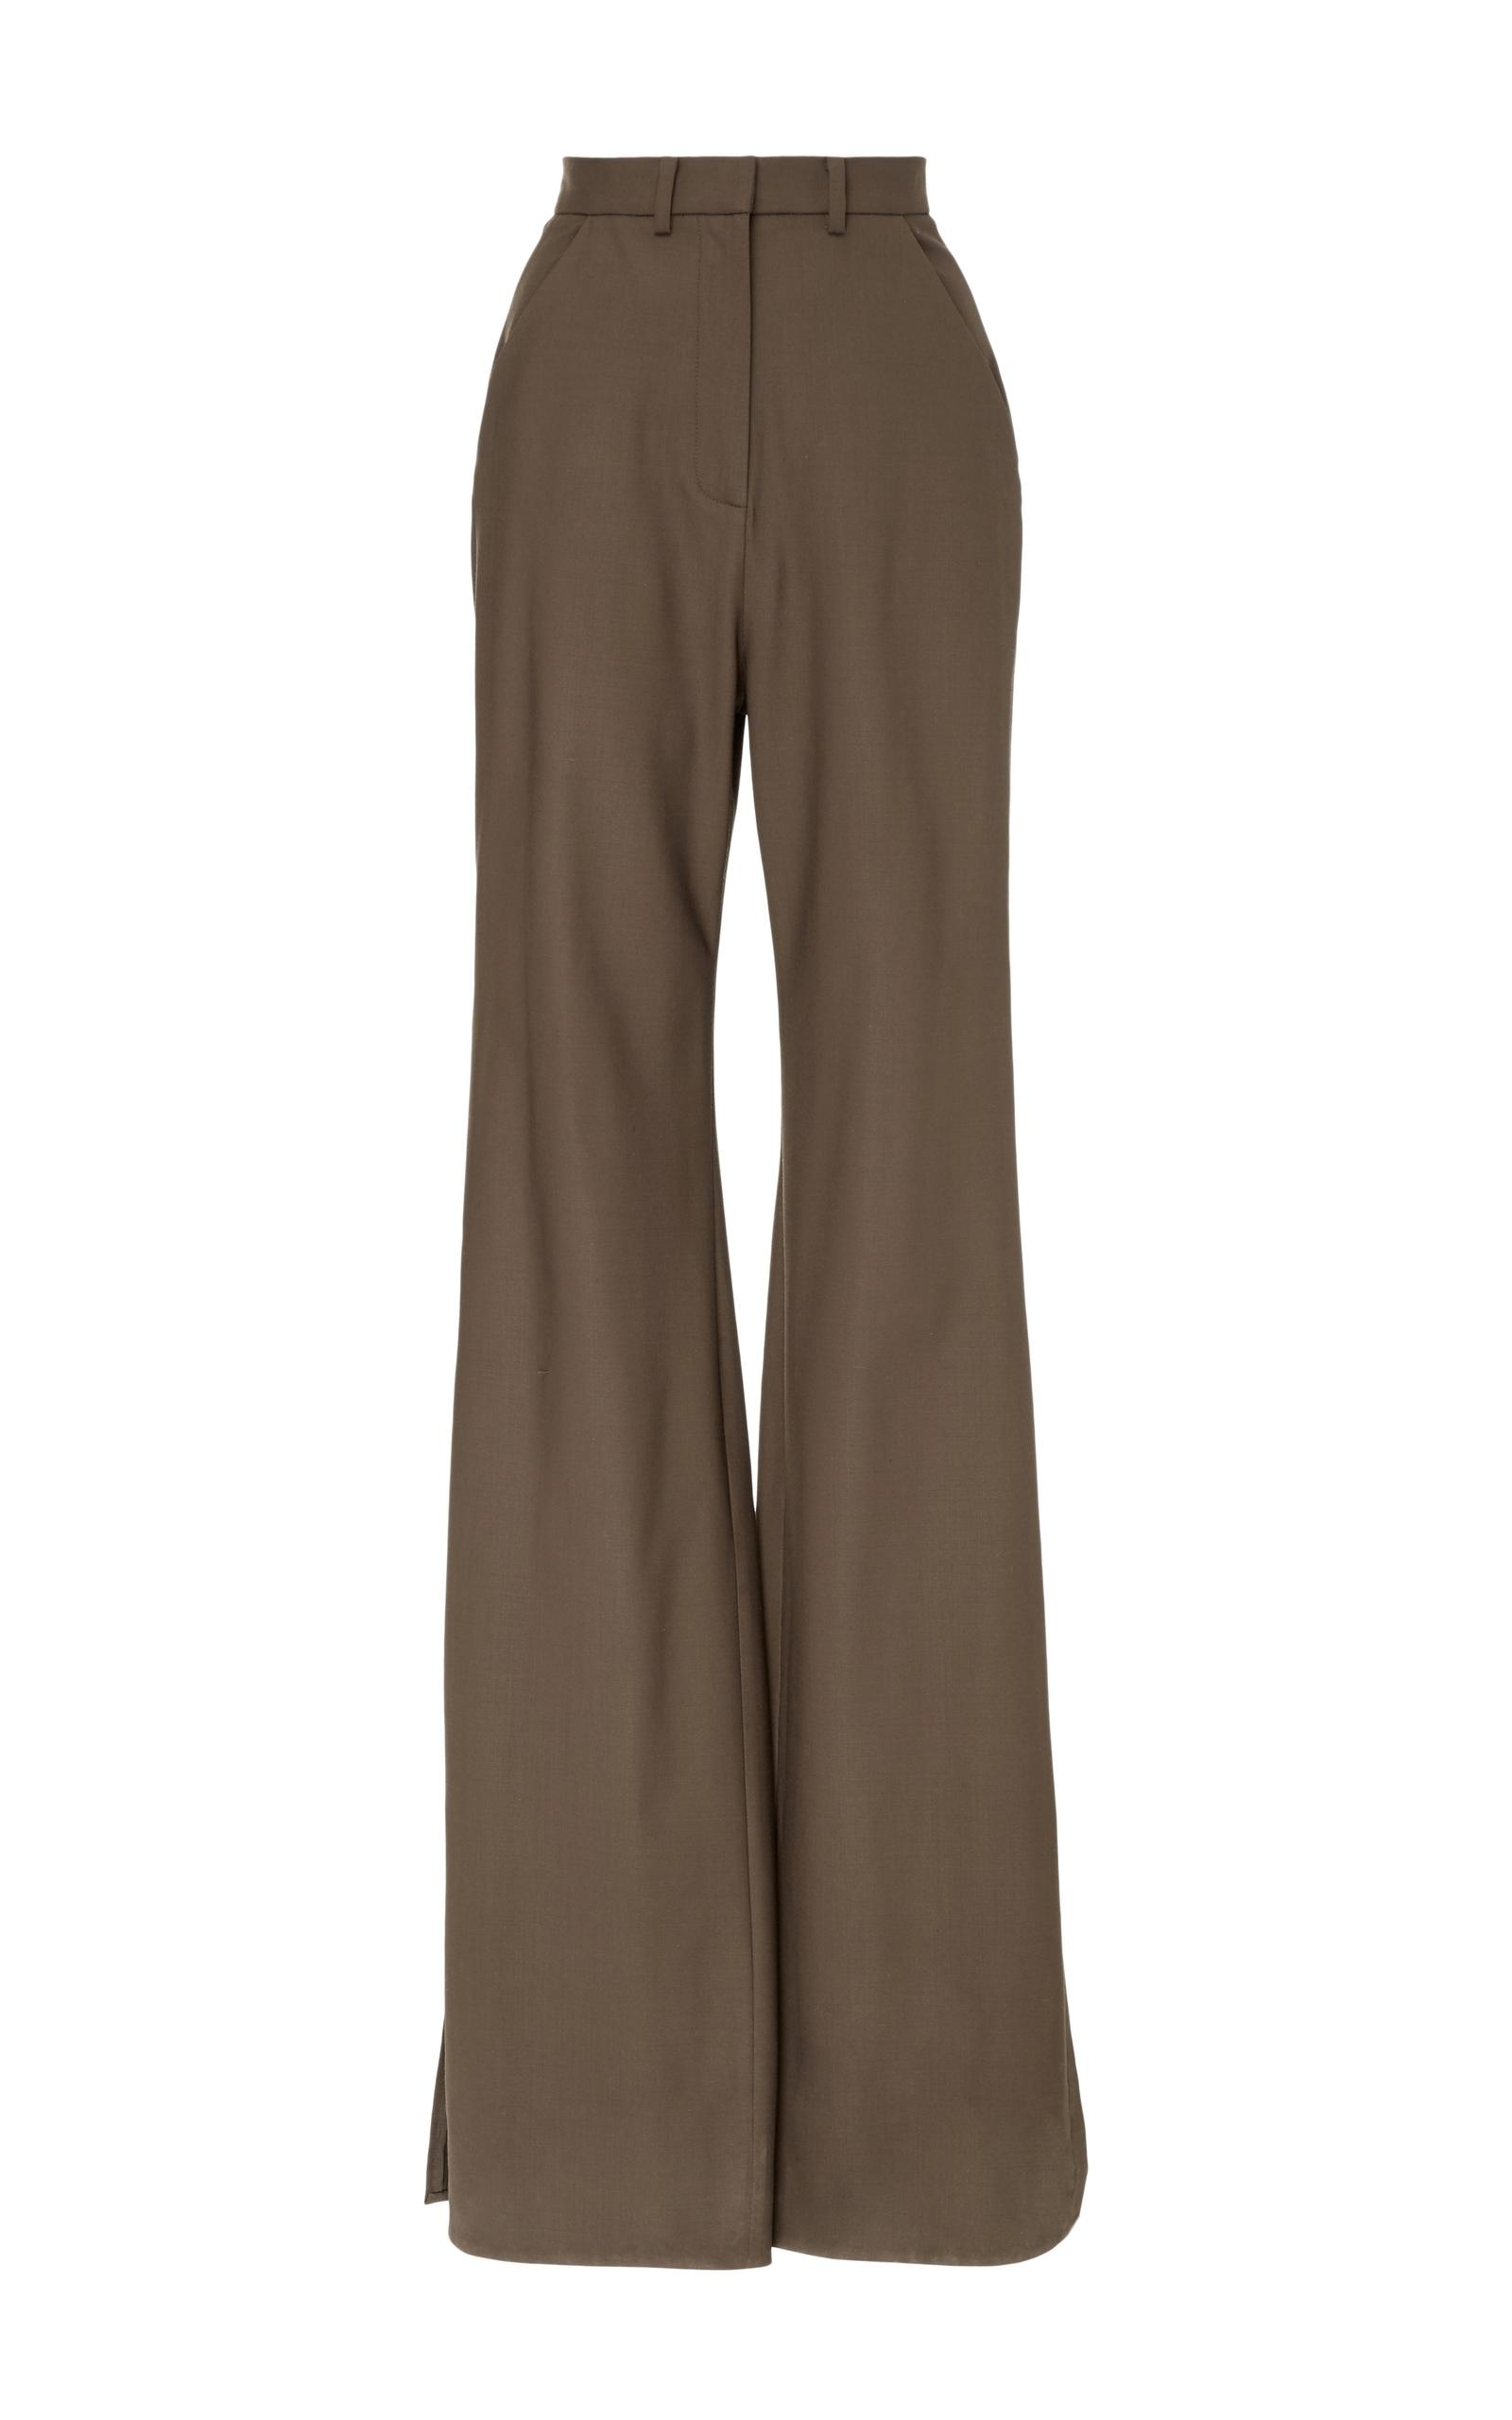 Love, Fire Burgundy Snap Side Track Pants. Item # Stash Points: 2, (?) This is the number of points you get in The Zumiez Stash for purchasing this item. Stash points are redeemable for exclusive rewards only available to Zumiez Stash members.